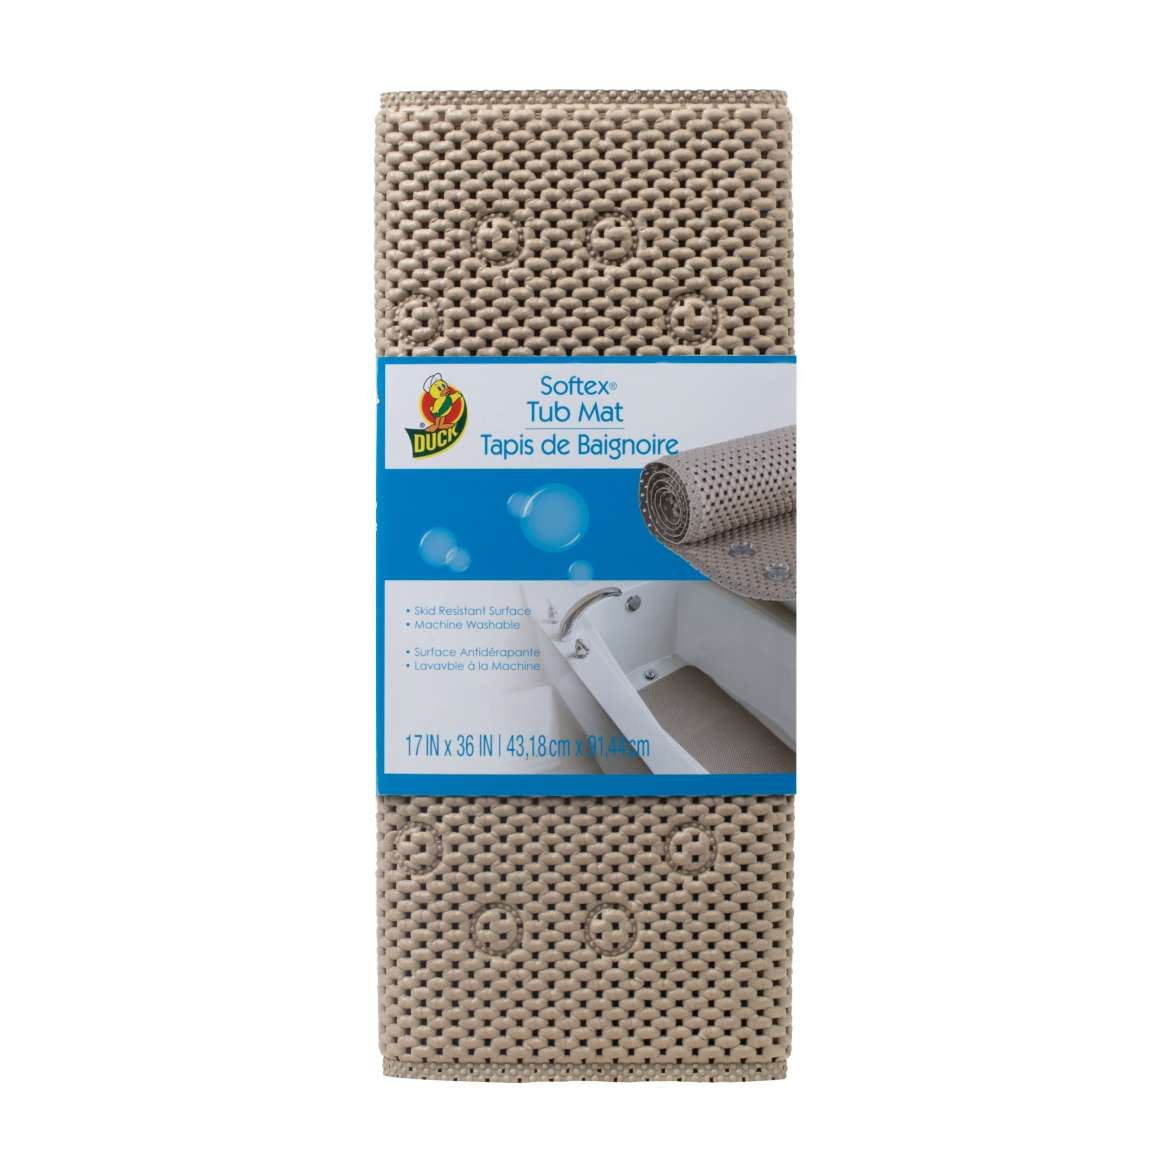 Duck® Brand Softex® Tub Mat - Taupe, 17 in. x 36 in. Image